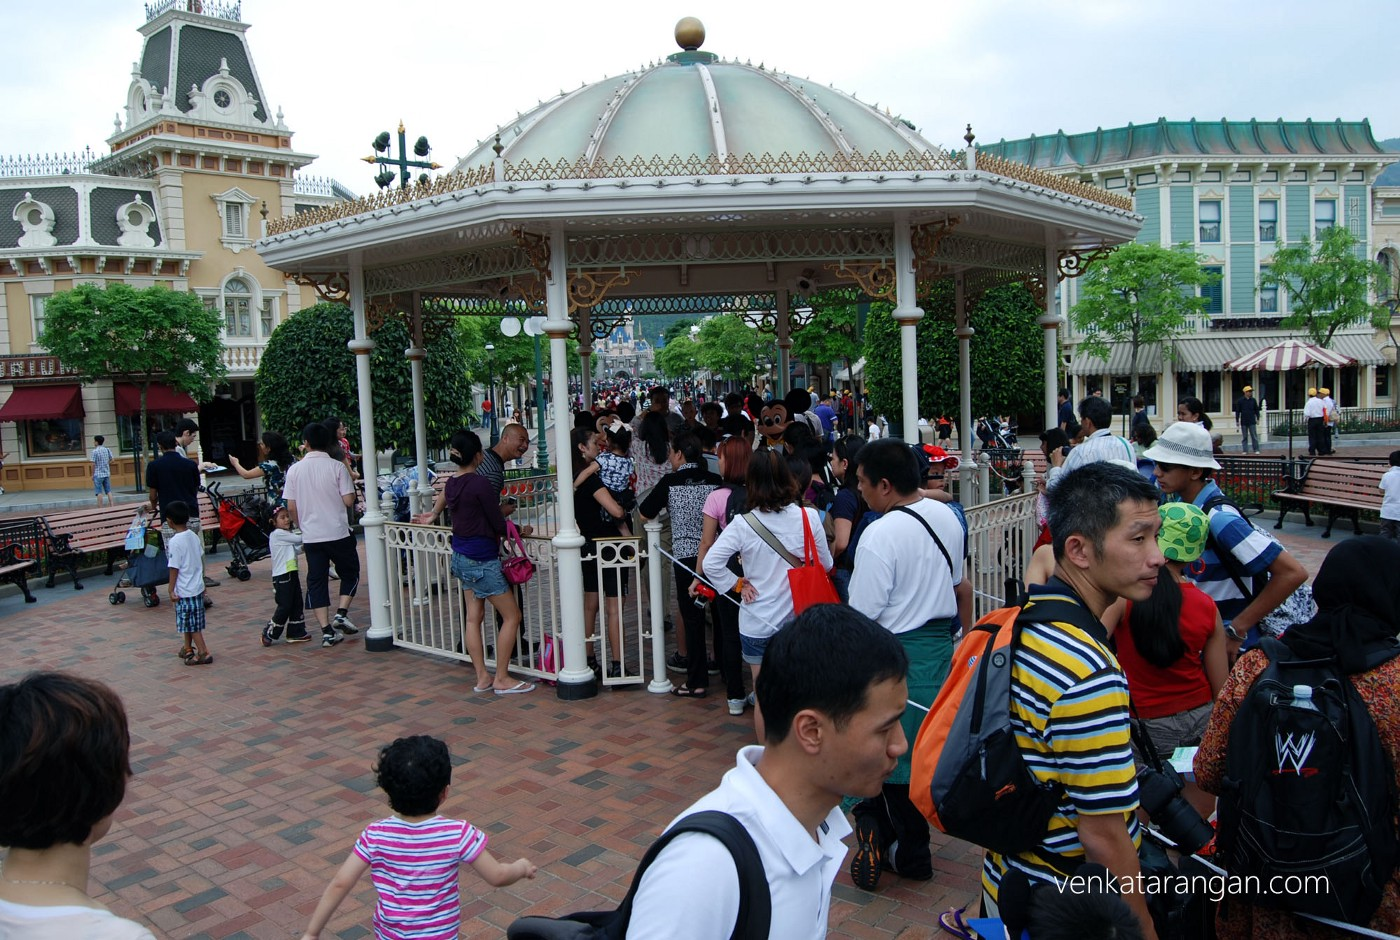 Queues for taking photographs were shorter in HK Disneyland compared to California Disneyland